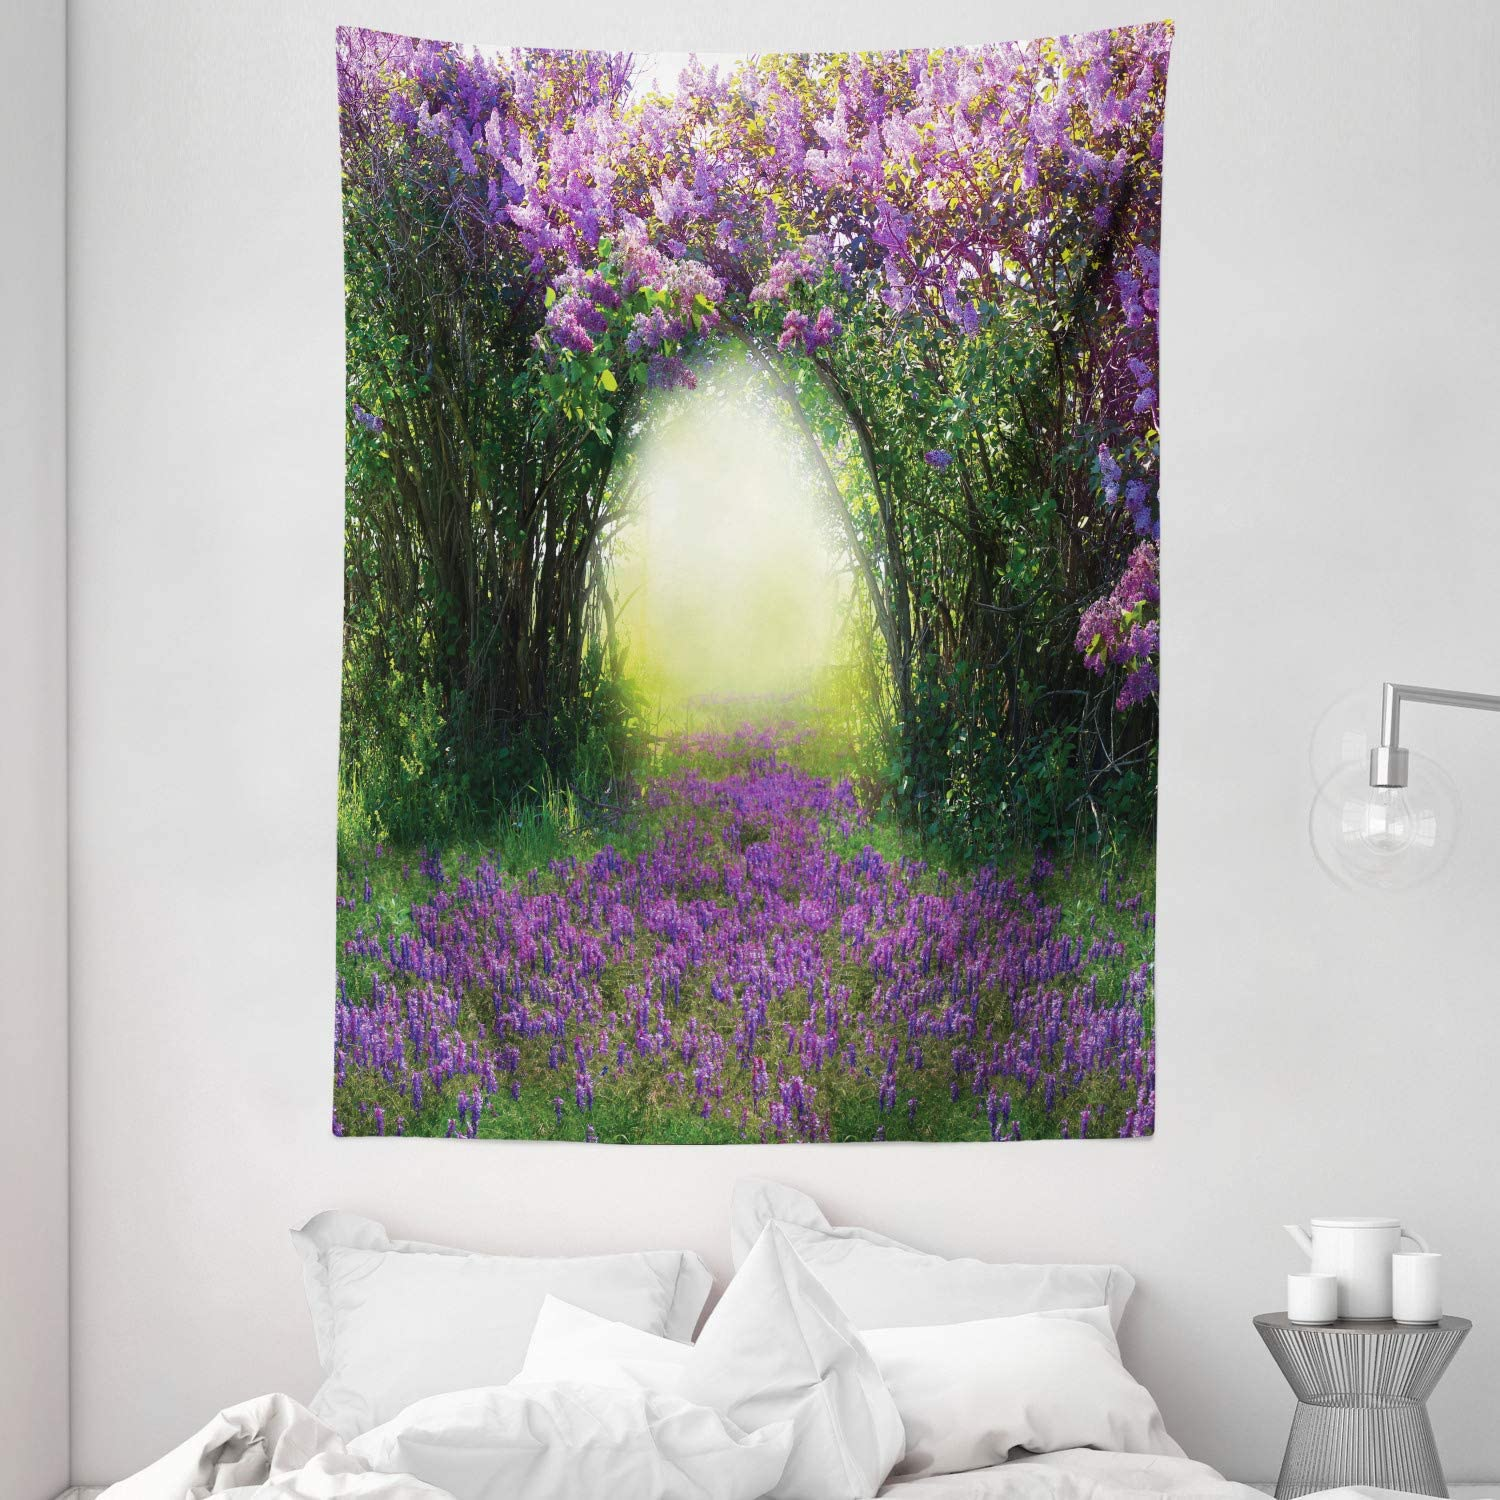 Ambesonne Garden Tapestry, Magic Misty Forest View Spring Blossoms Bushes Greenery Grasses Sun Rays, Wall Hanging for Bedroom Living Room Dorm, 60